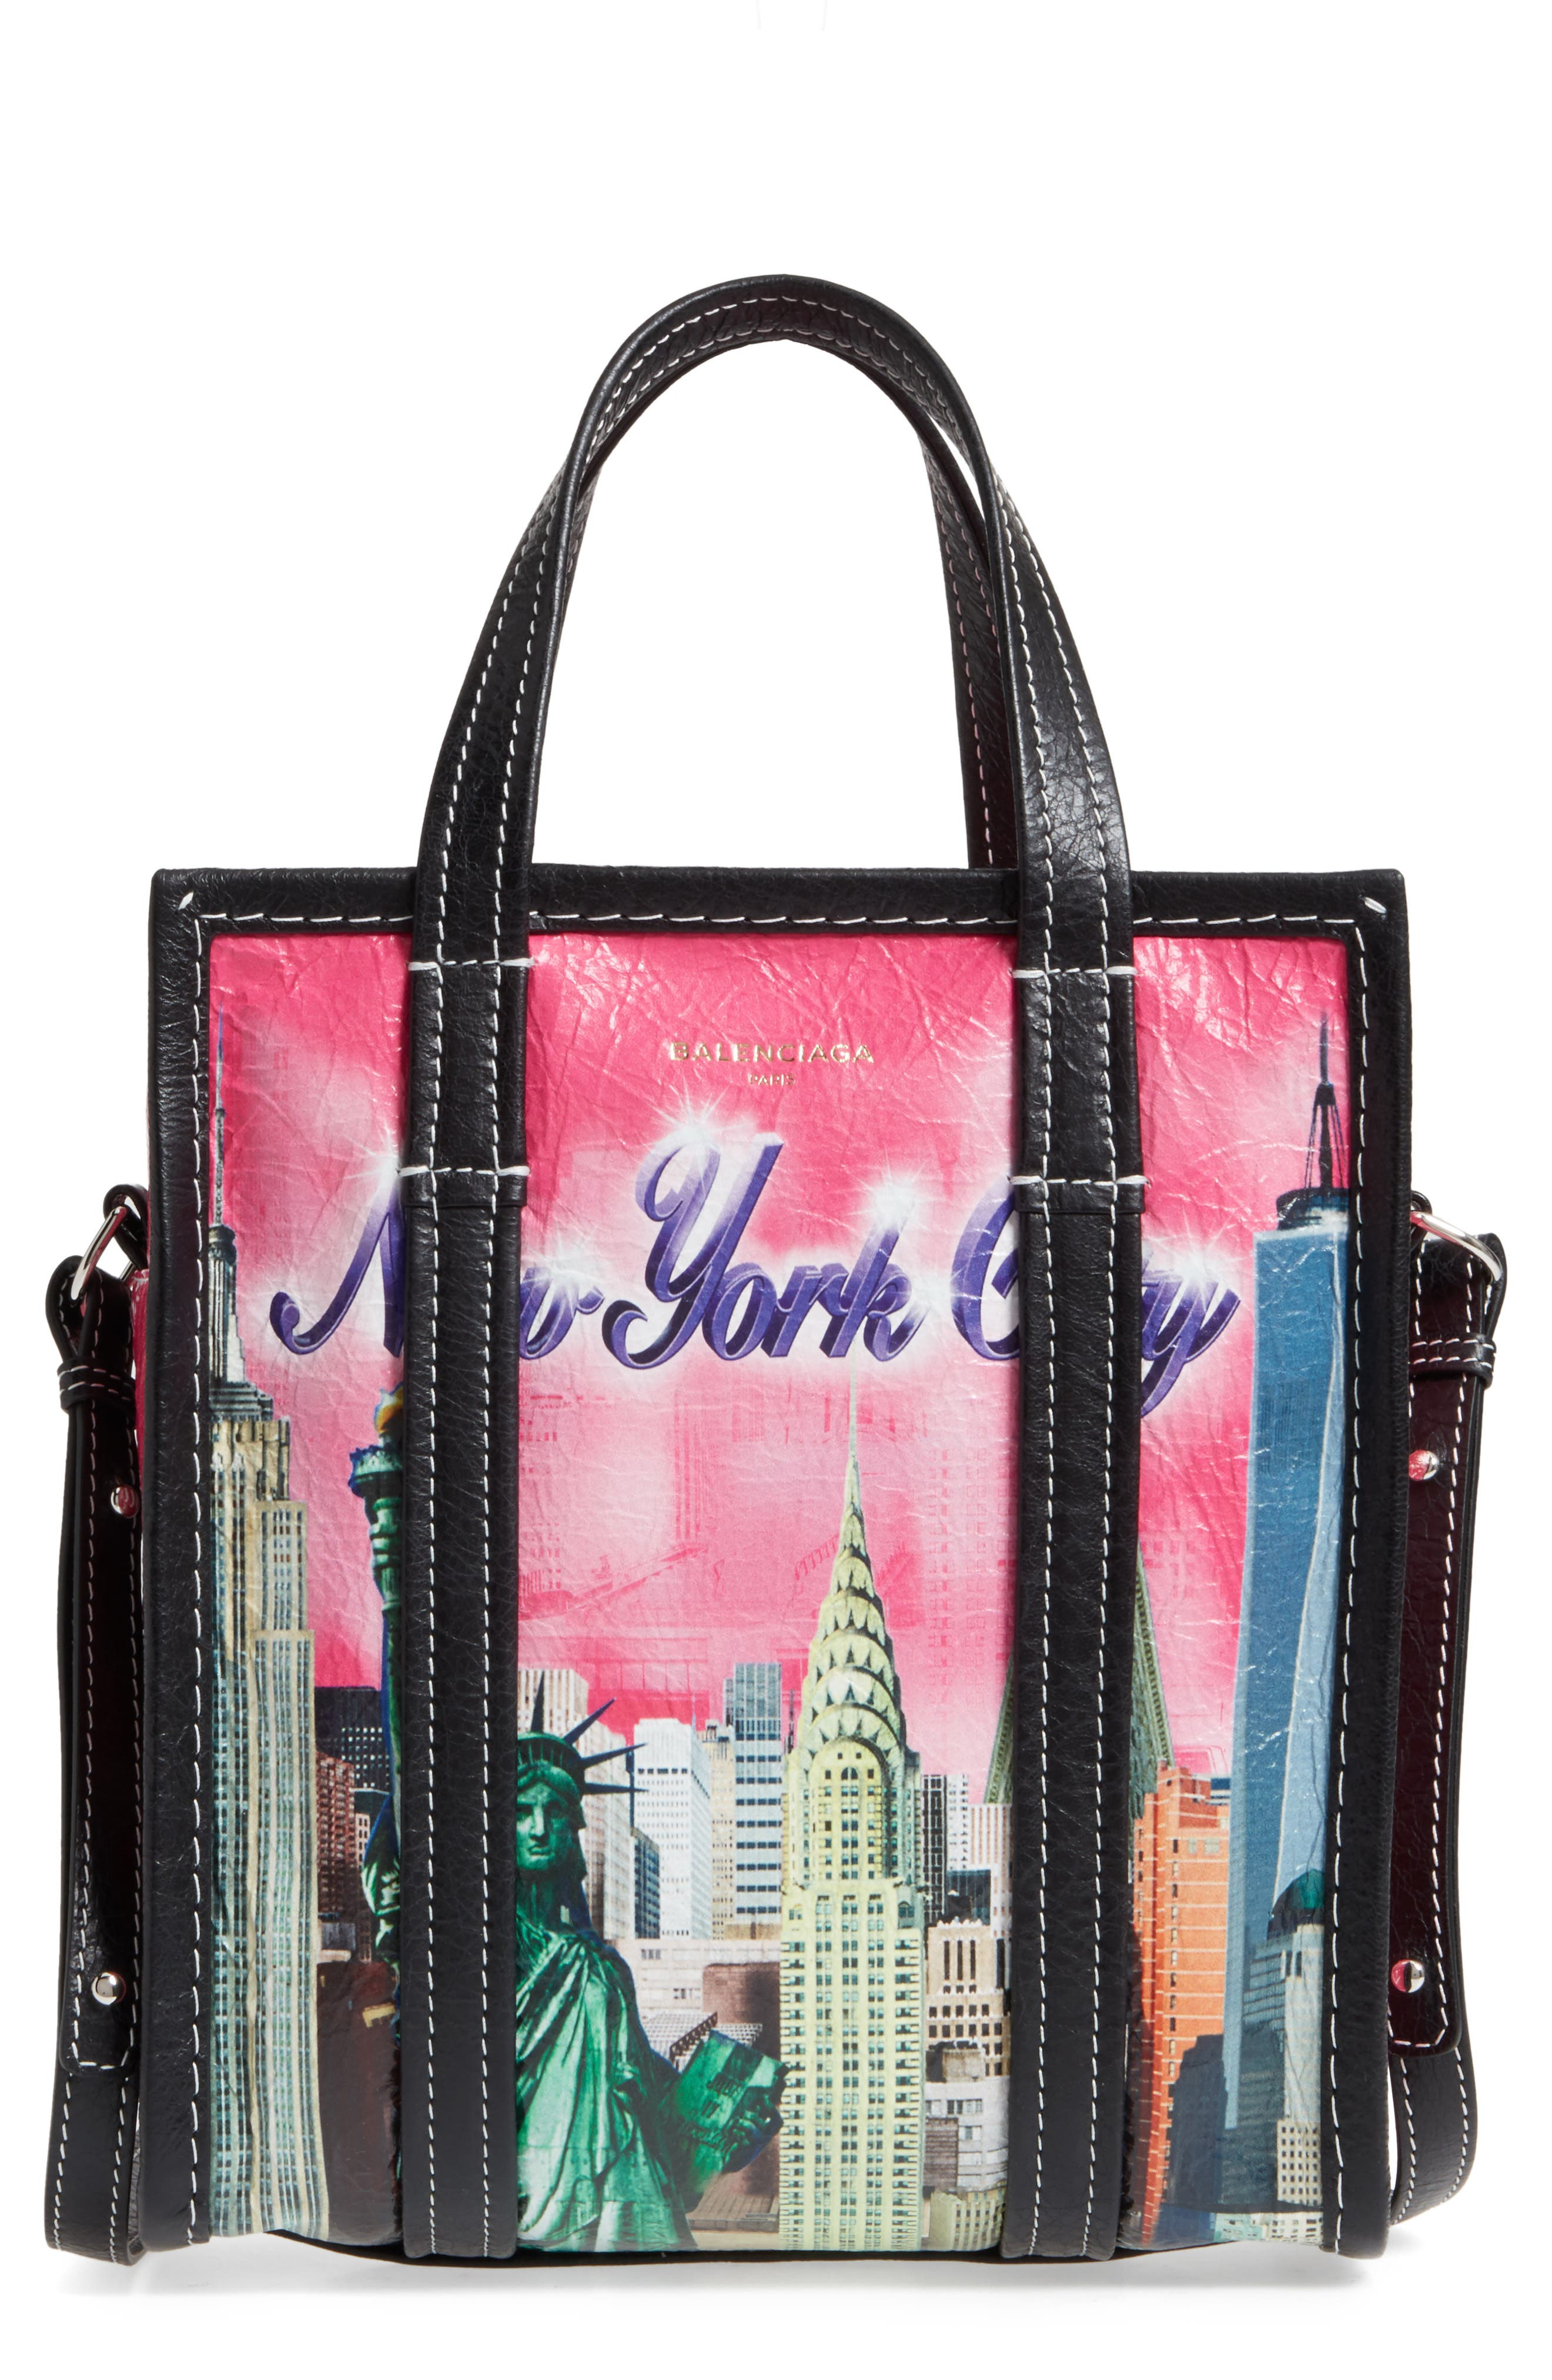 Extra Small Bazaar Leather Shopper,                         Main,                         color, New York City Pink Multi